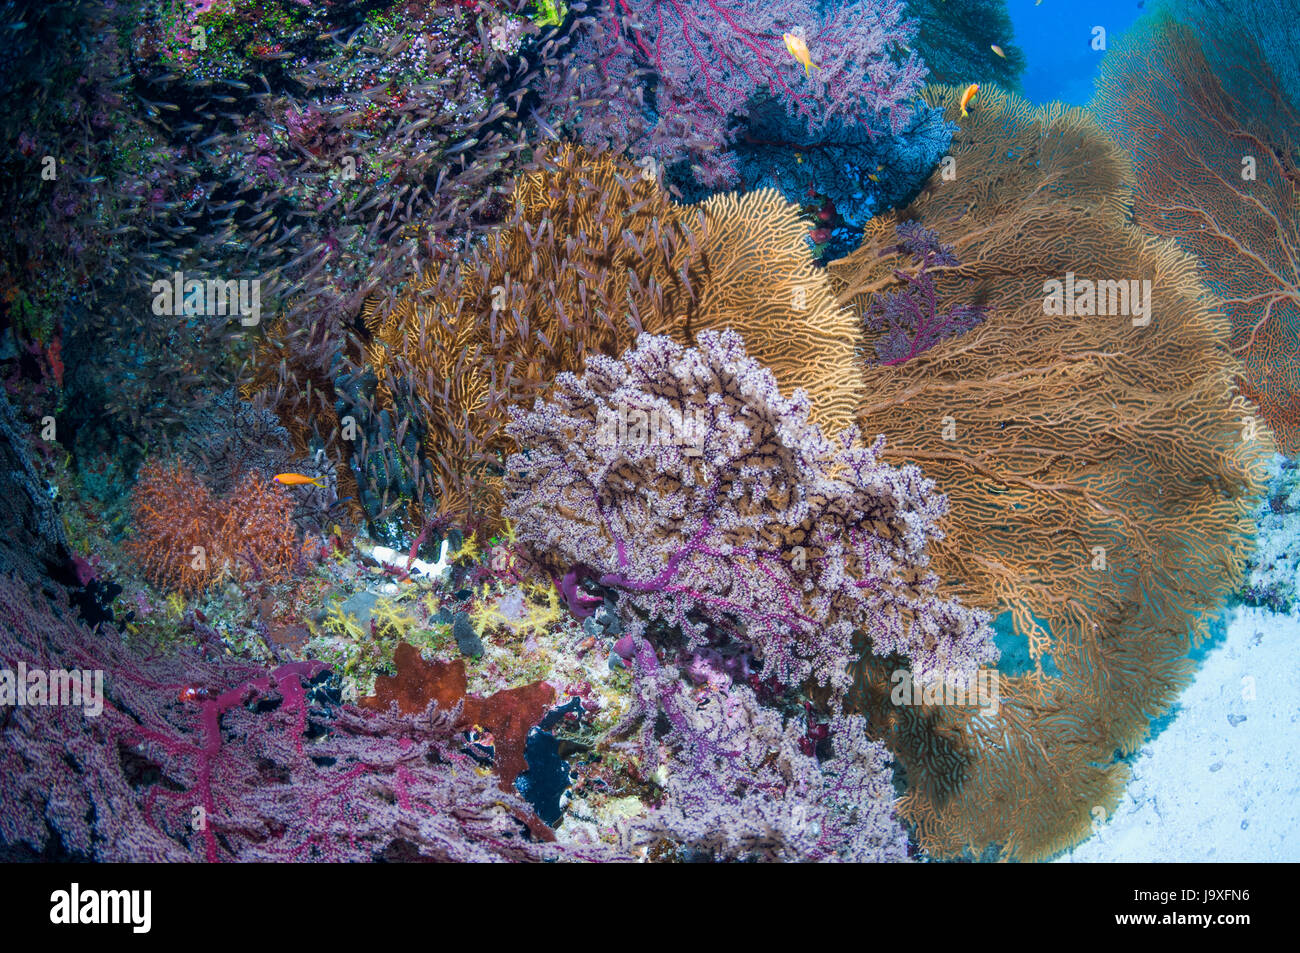 Gorgonians and Pygmy sweepers on coral reef.  Similan Islands, Andaman Sea, Thailand. - Stock Image